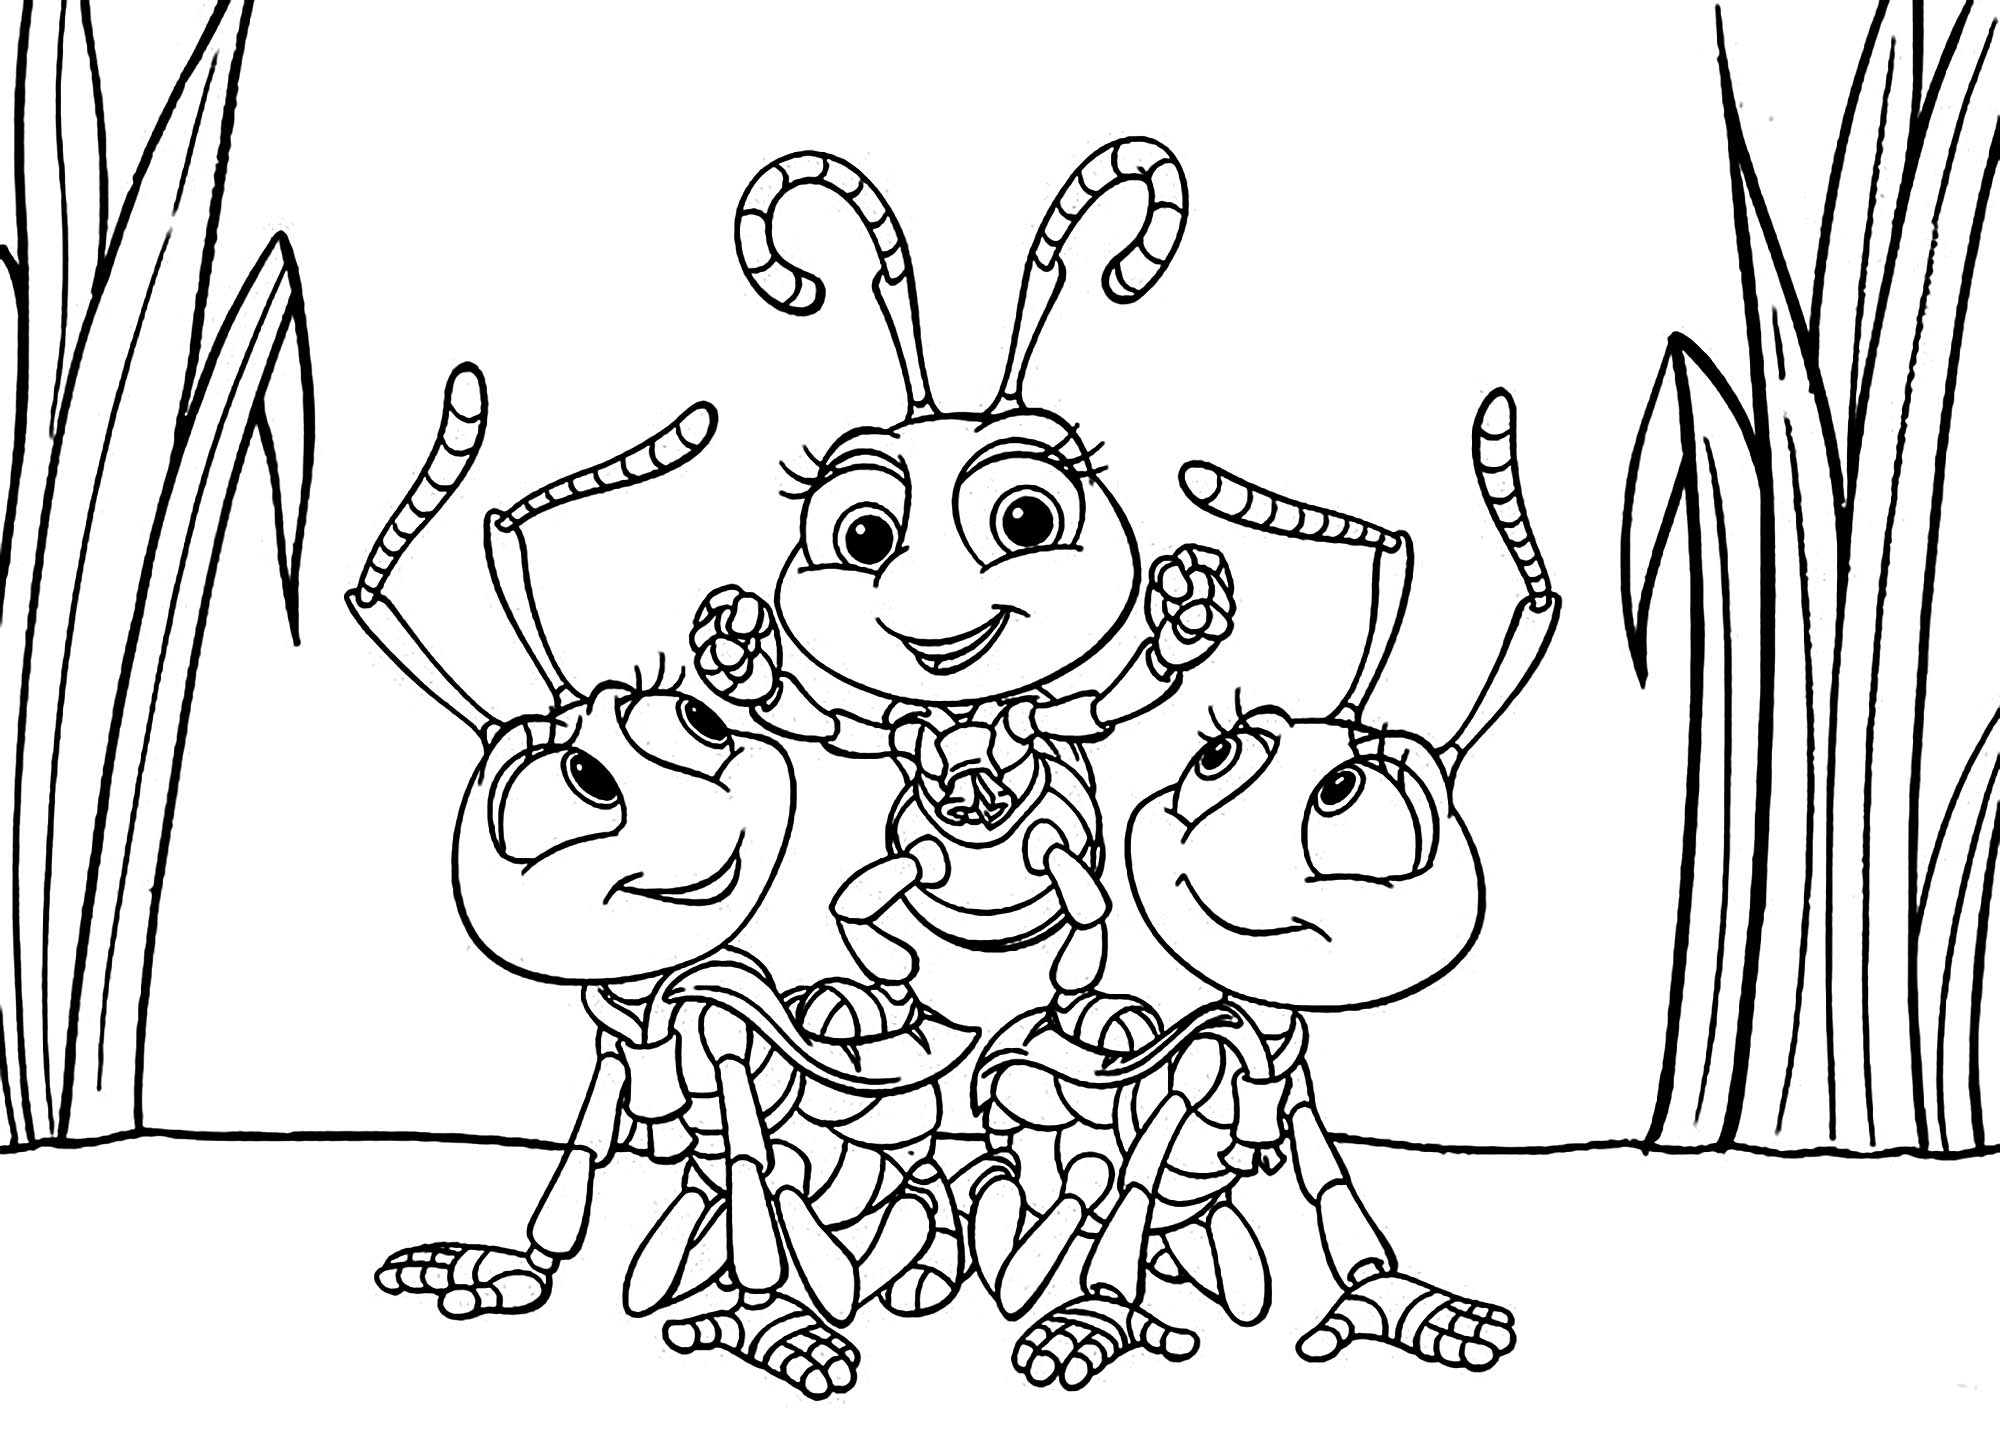 Easy free A Bugs Life coloring page to download